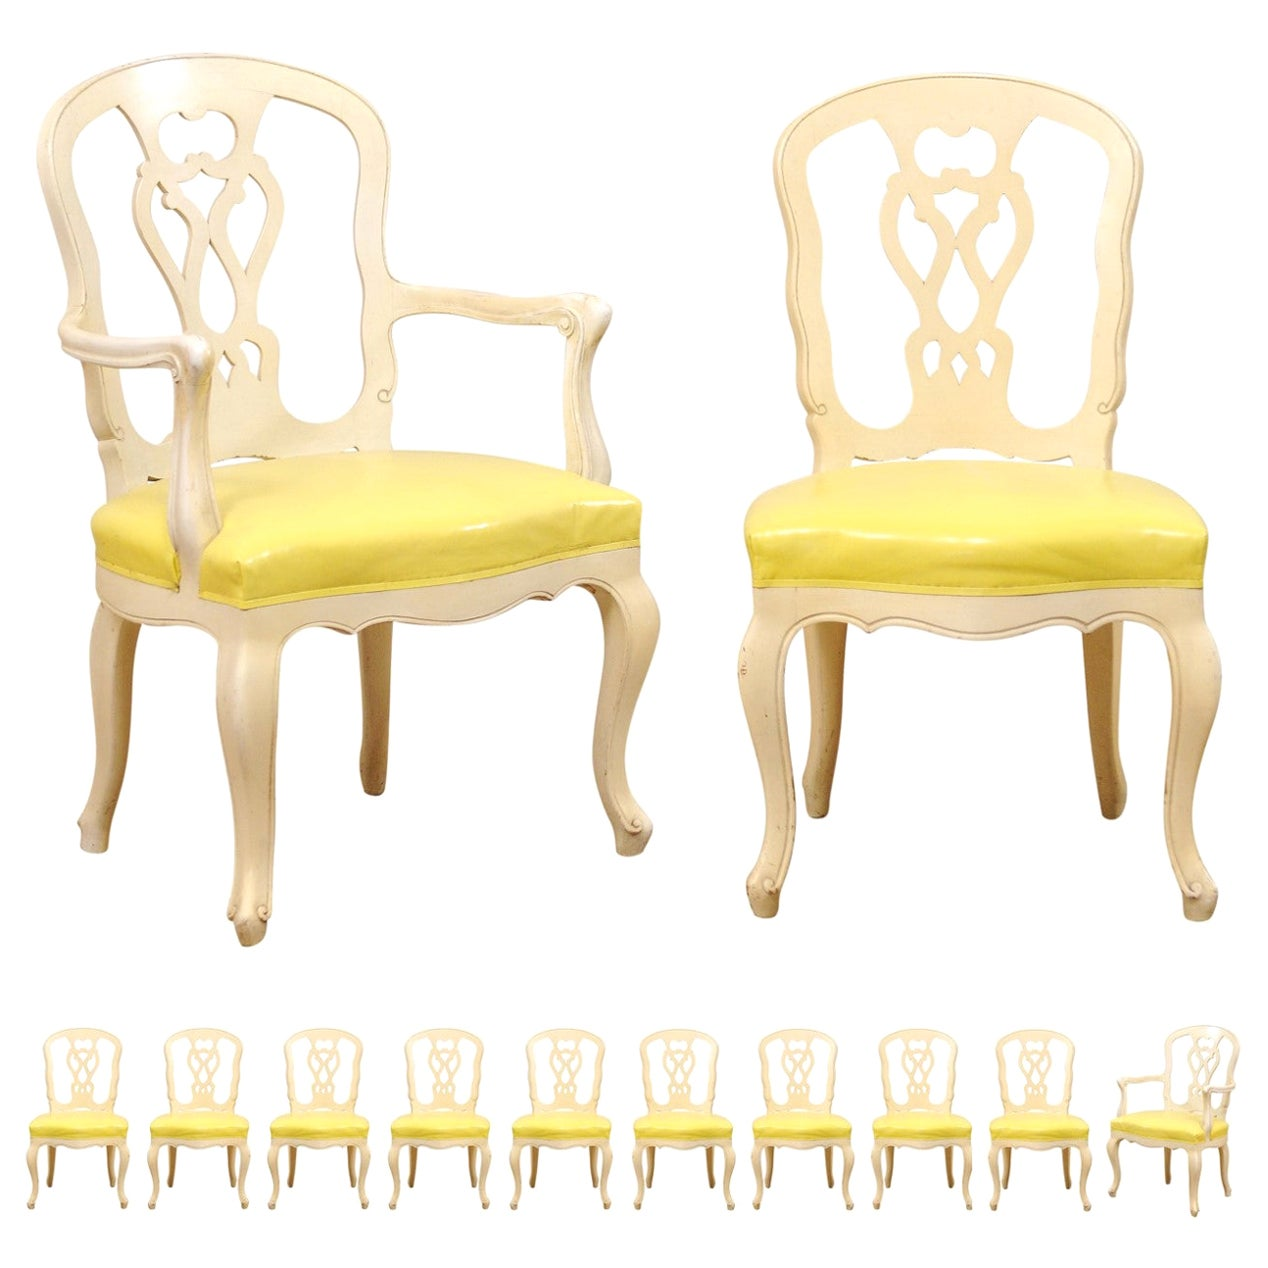 Set of 12 Venetian Style Carved/Painted Wood Dining Chairs w/ Leather Upholstery